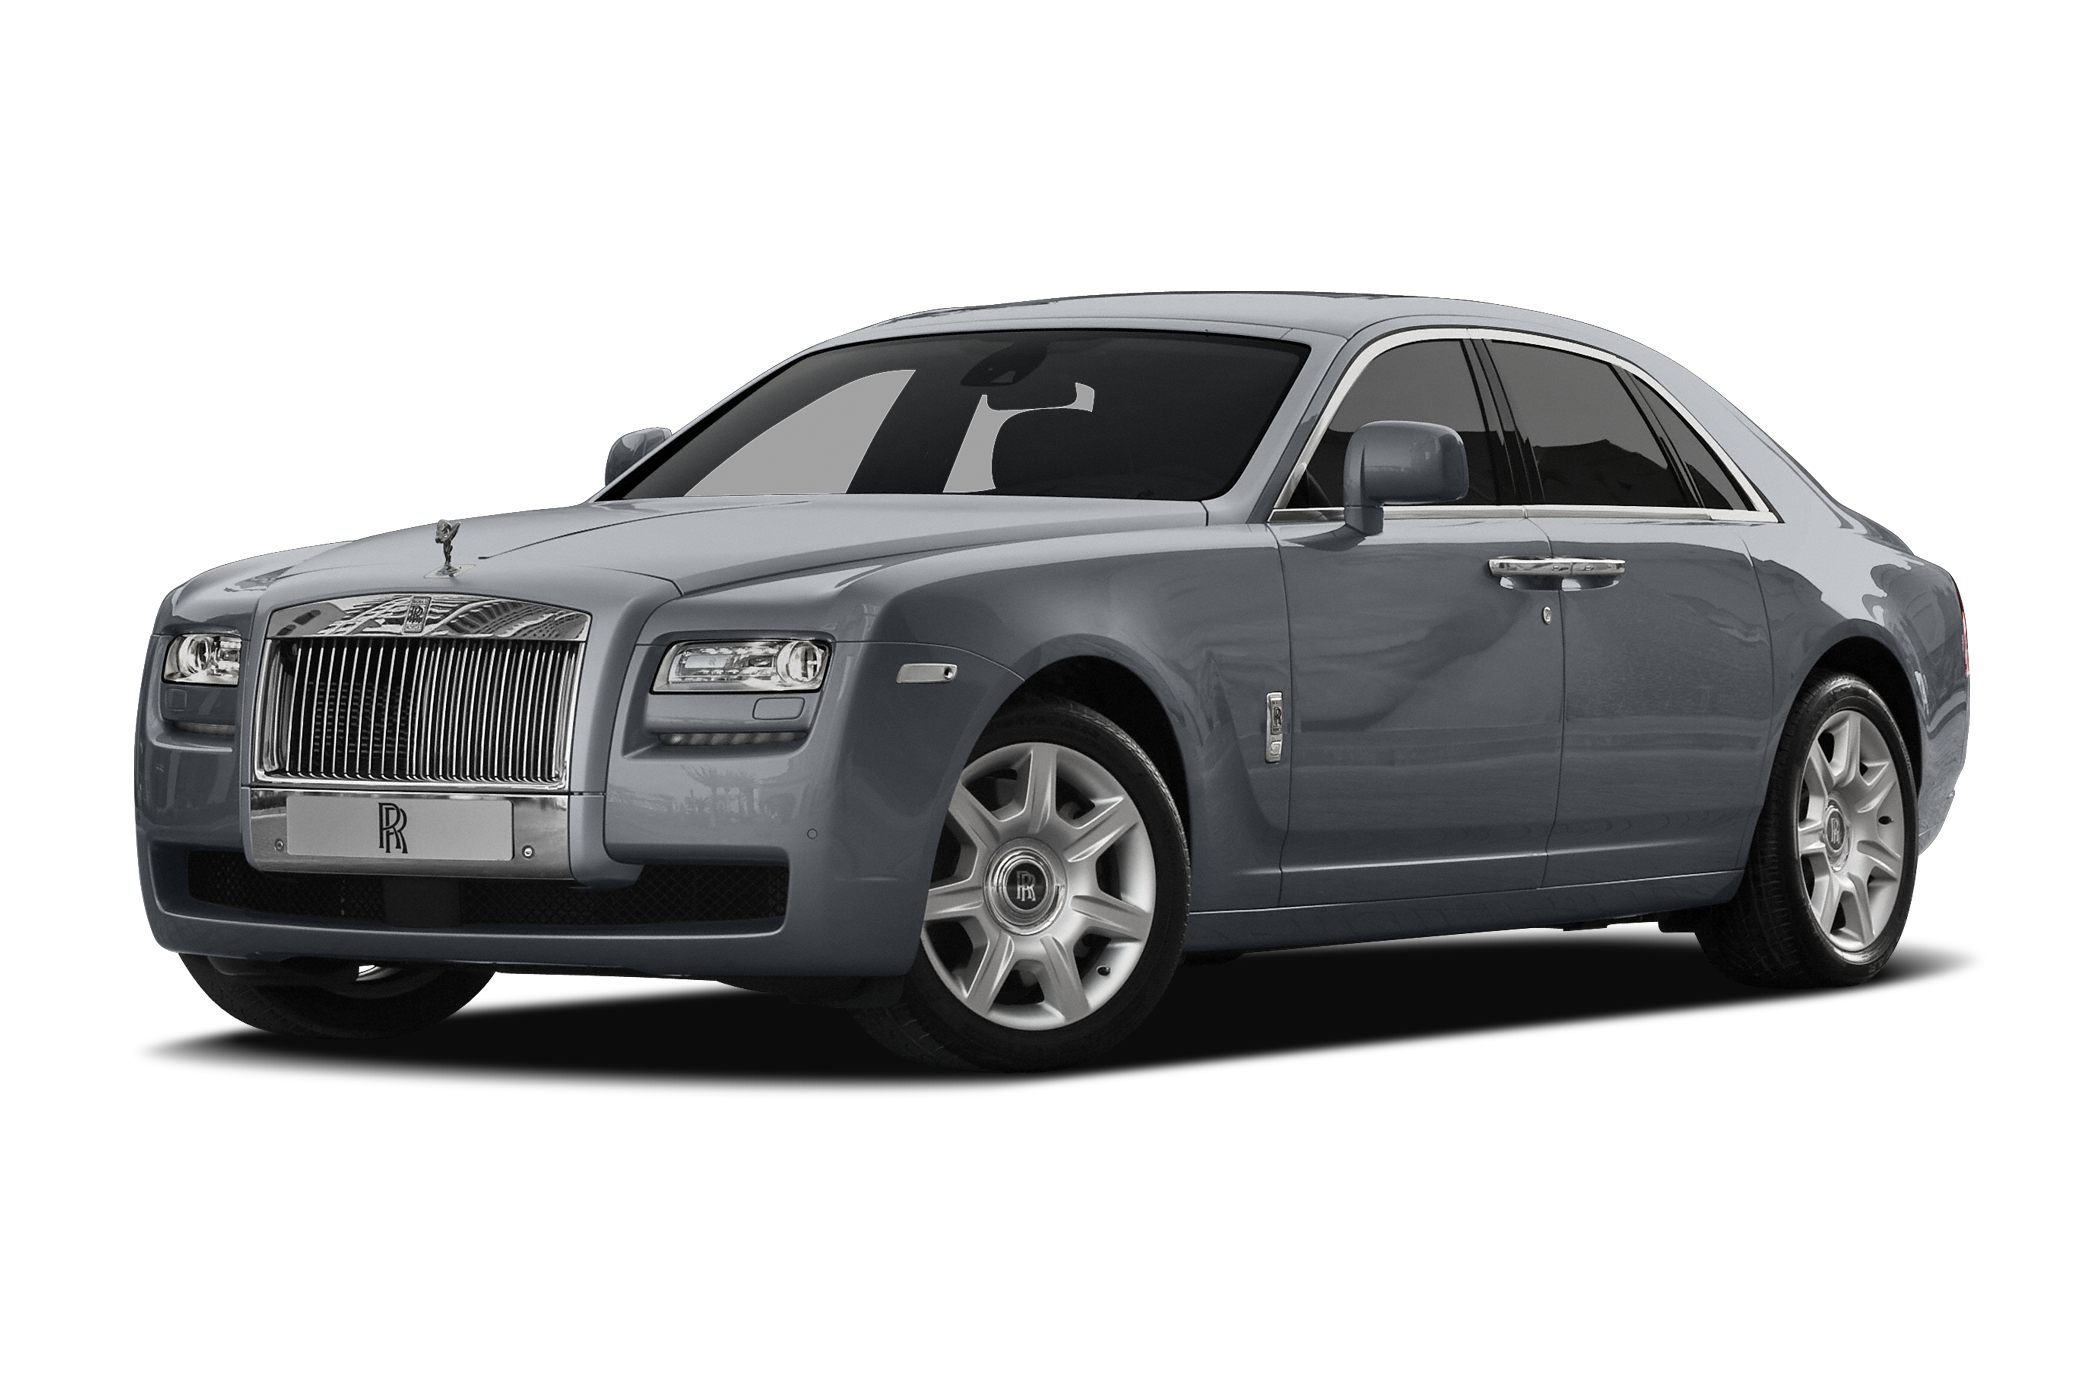 2011 rolls-royce ghost specs and prices